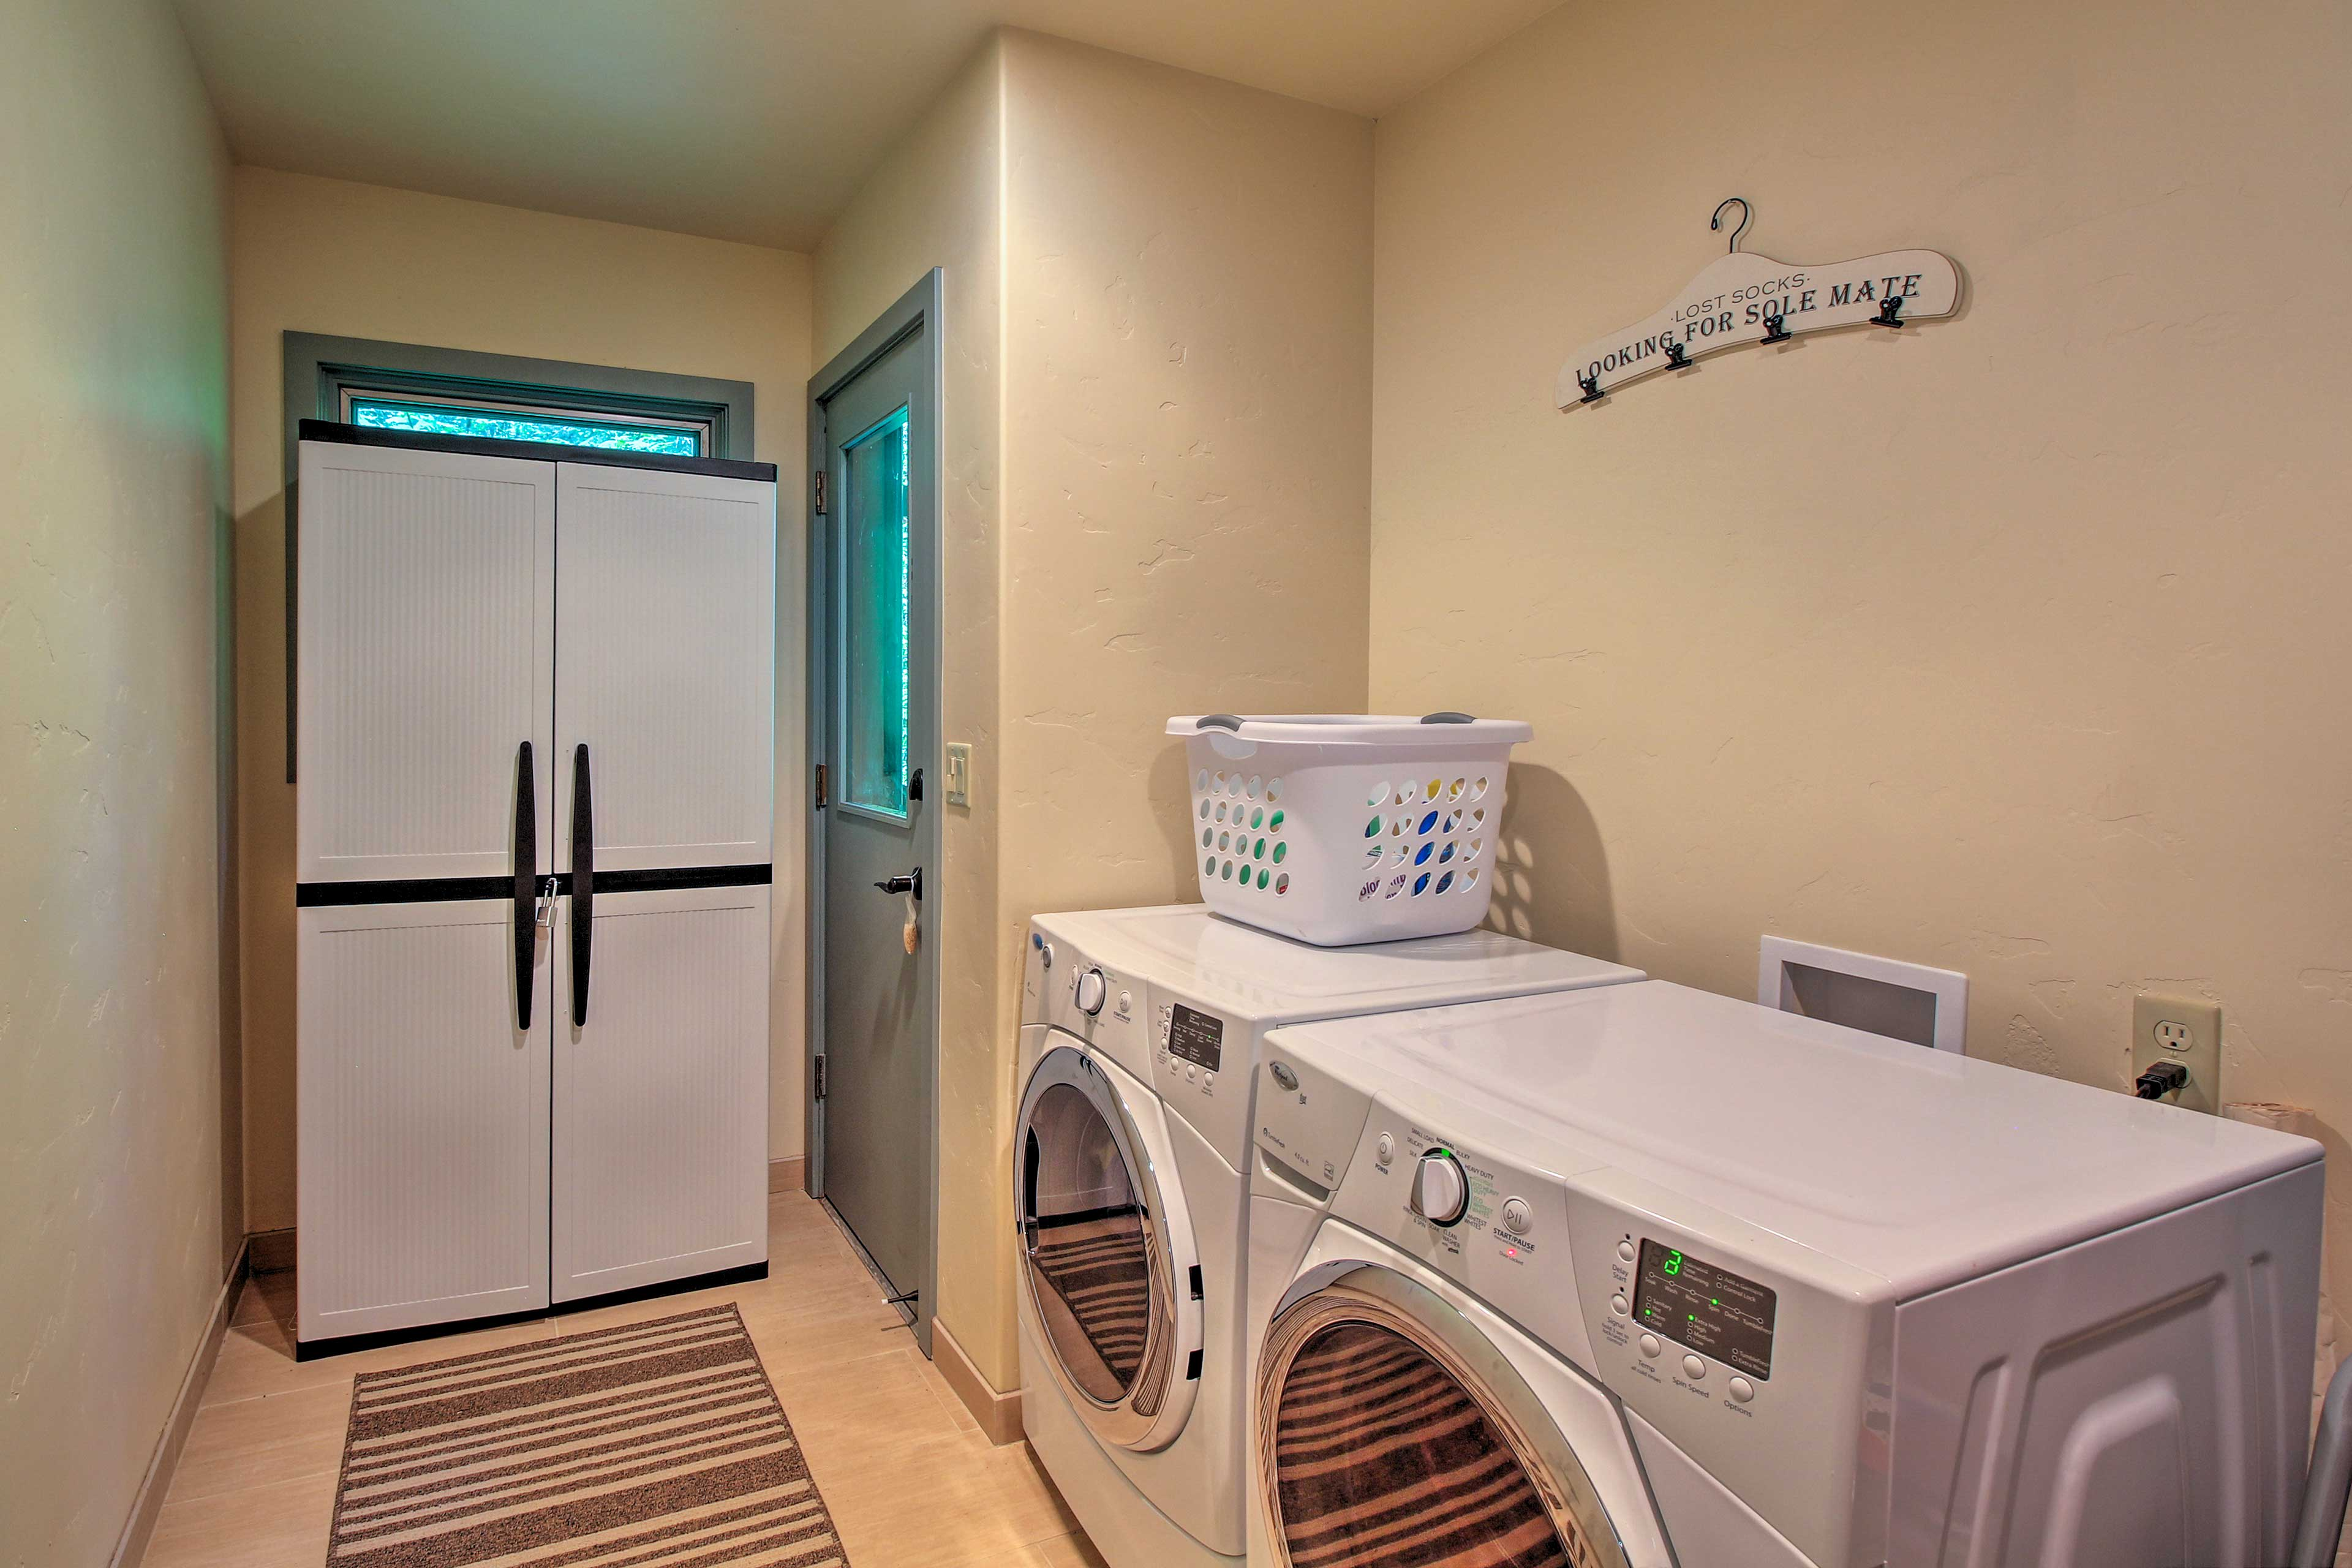 You don't have to pack that much thanks to the full washer and dryers!